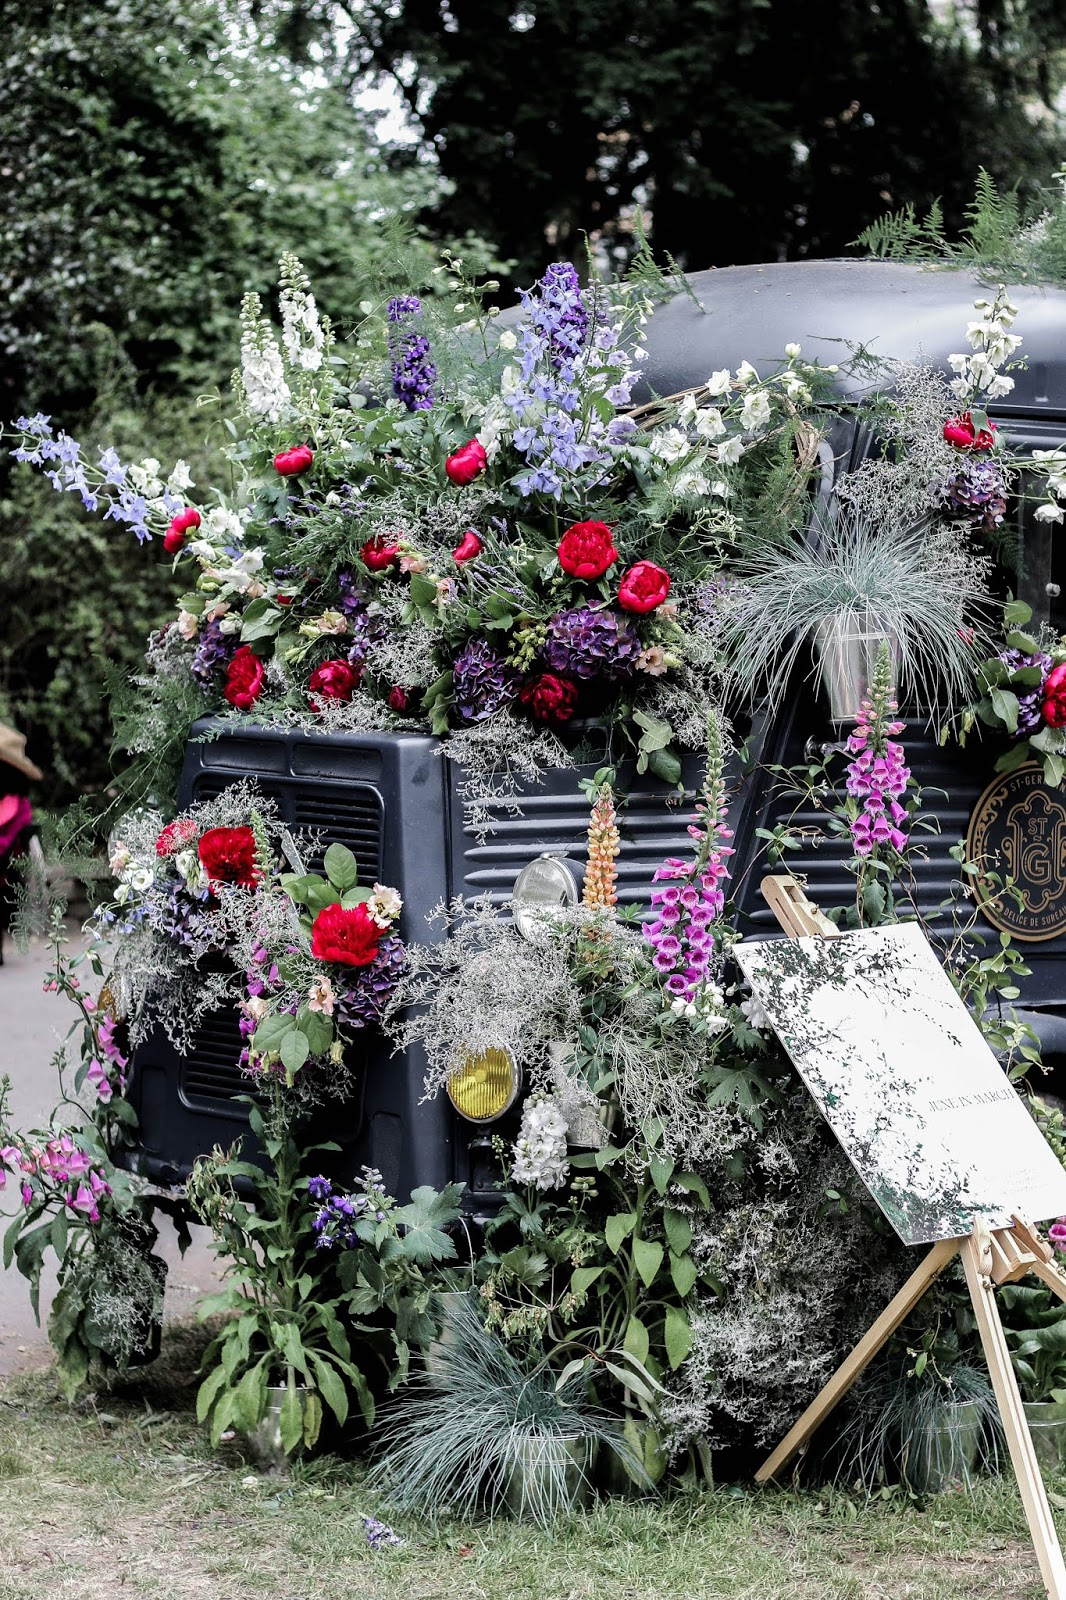 Vintage Truck Covered in Wild Flowers